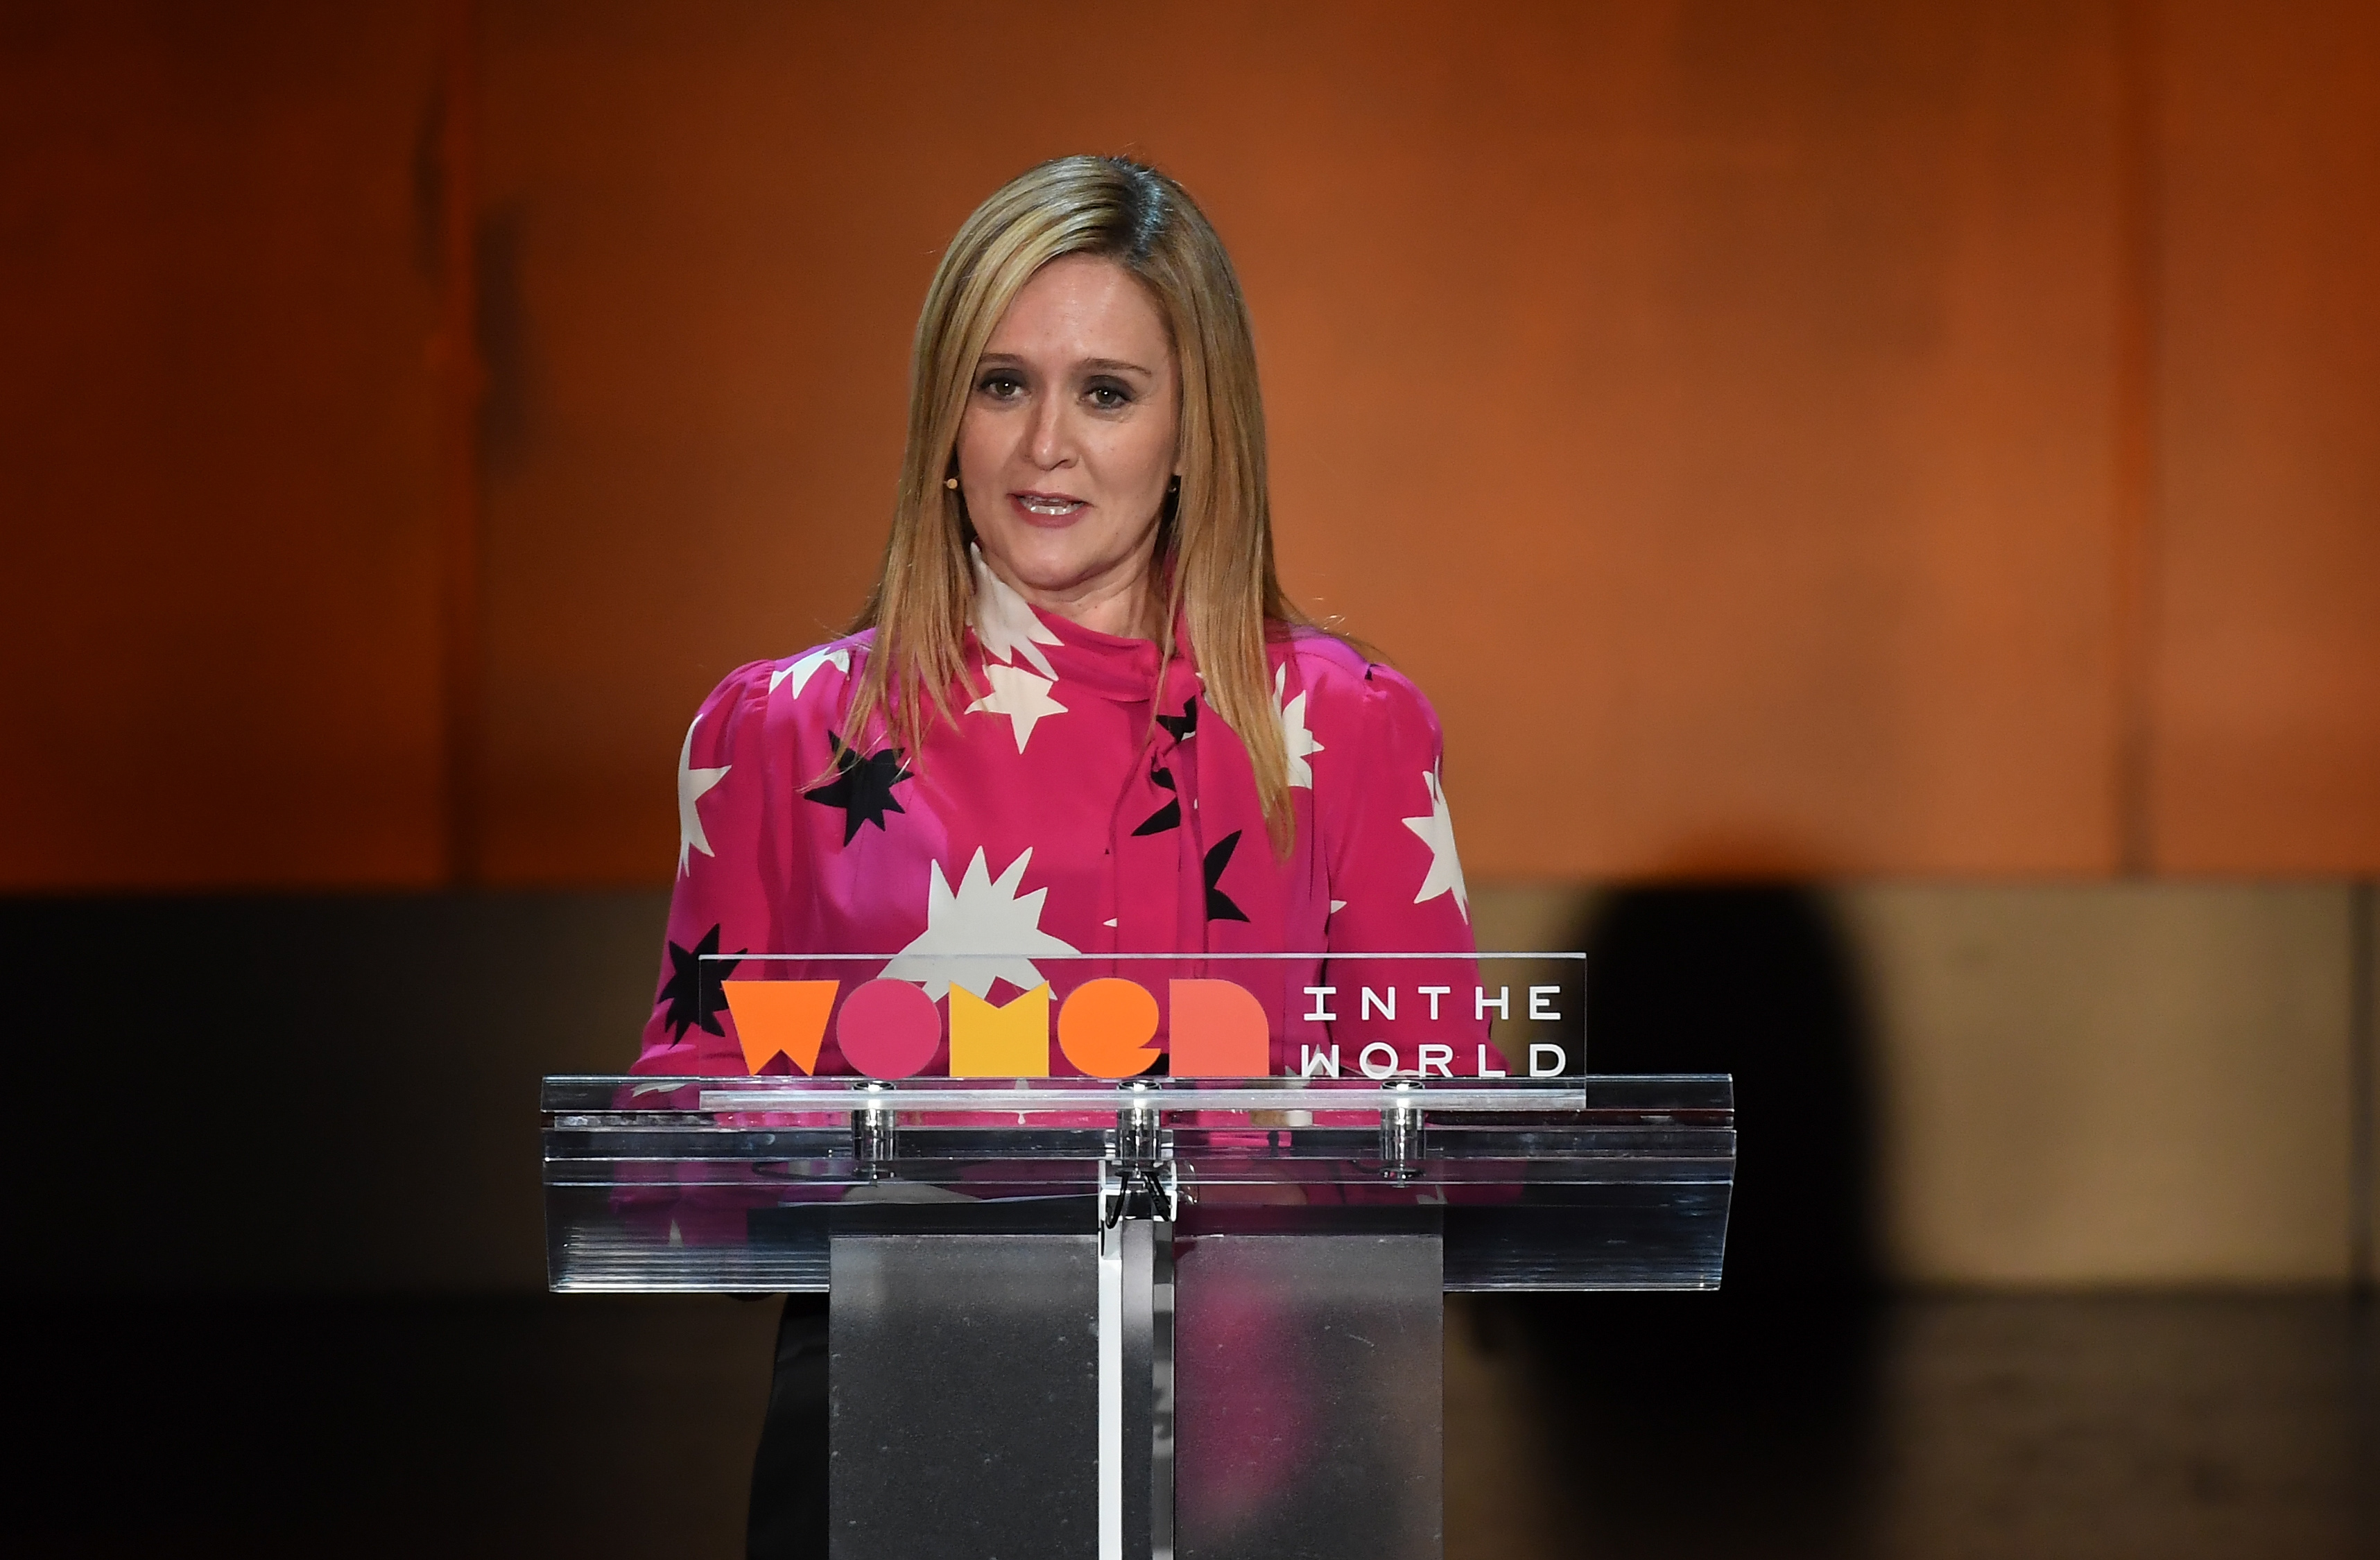 Samantha Bee has apologized for the crude name-calling